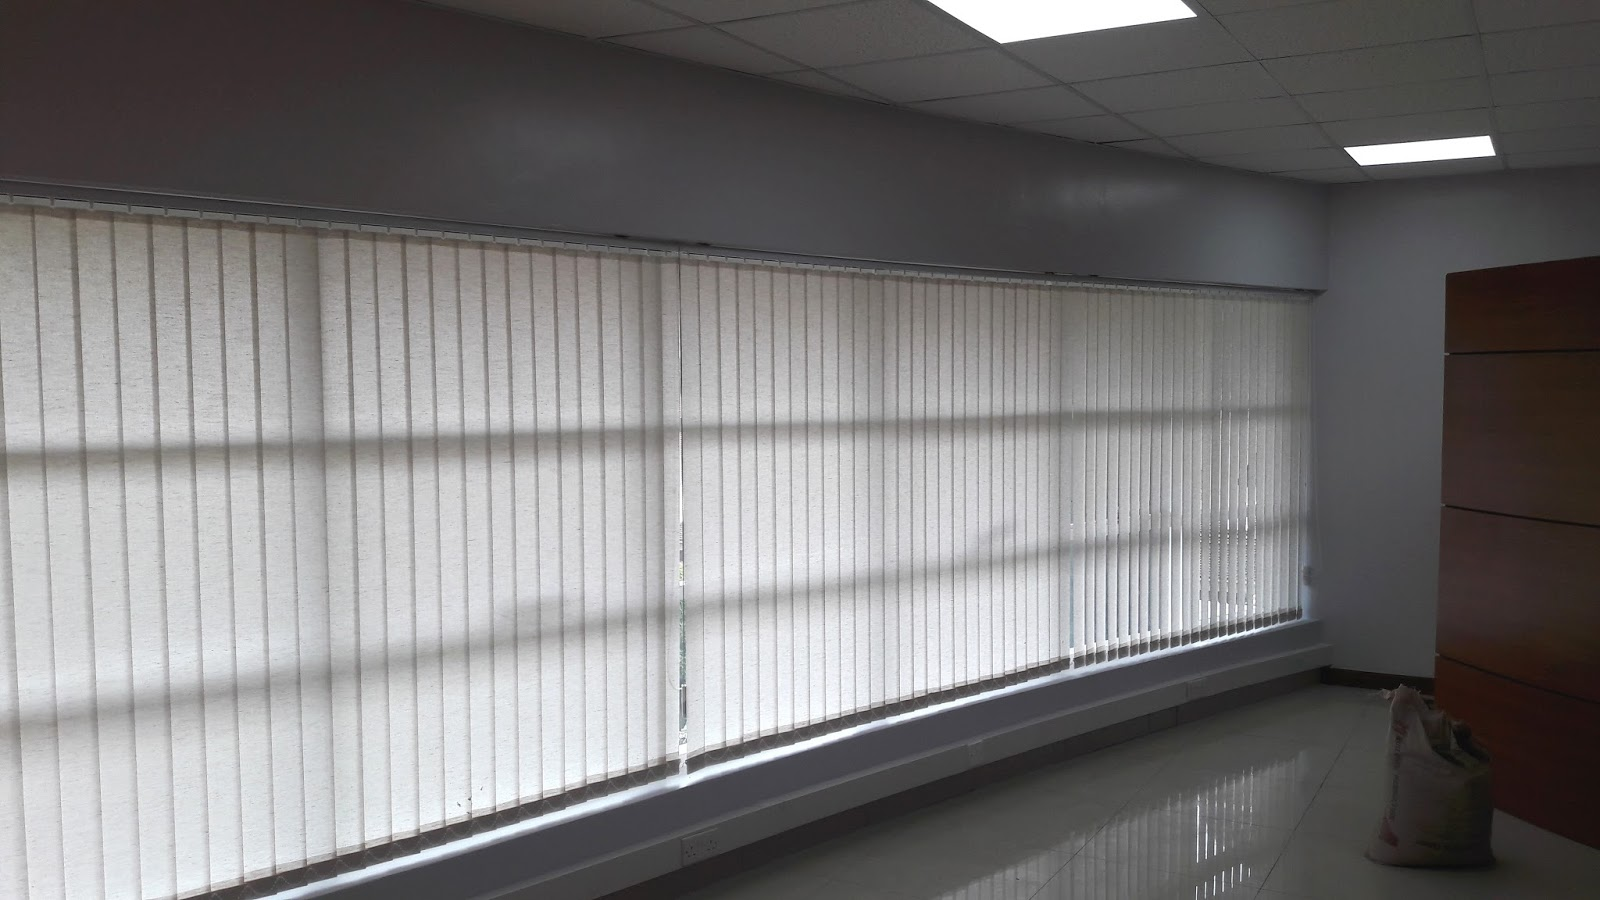 Window Office Blinds Gotten From Offismatt Decora Limited Will Give The Office  Windows New Dimension In Appearance And They Introduce New Office Interior  ...